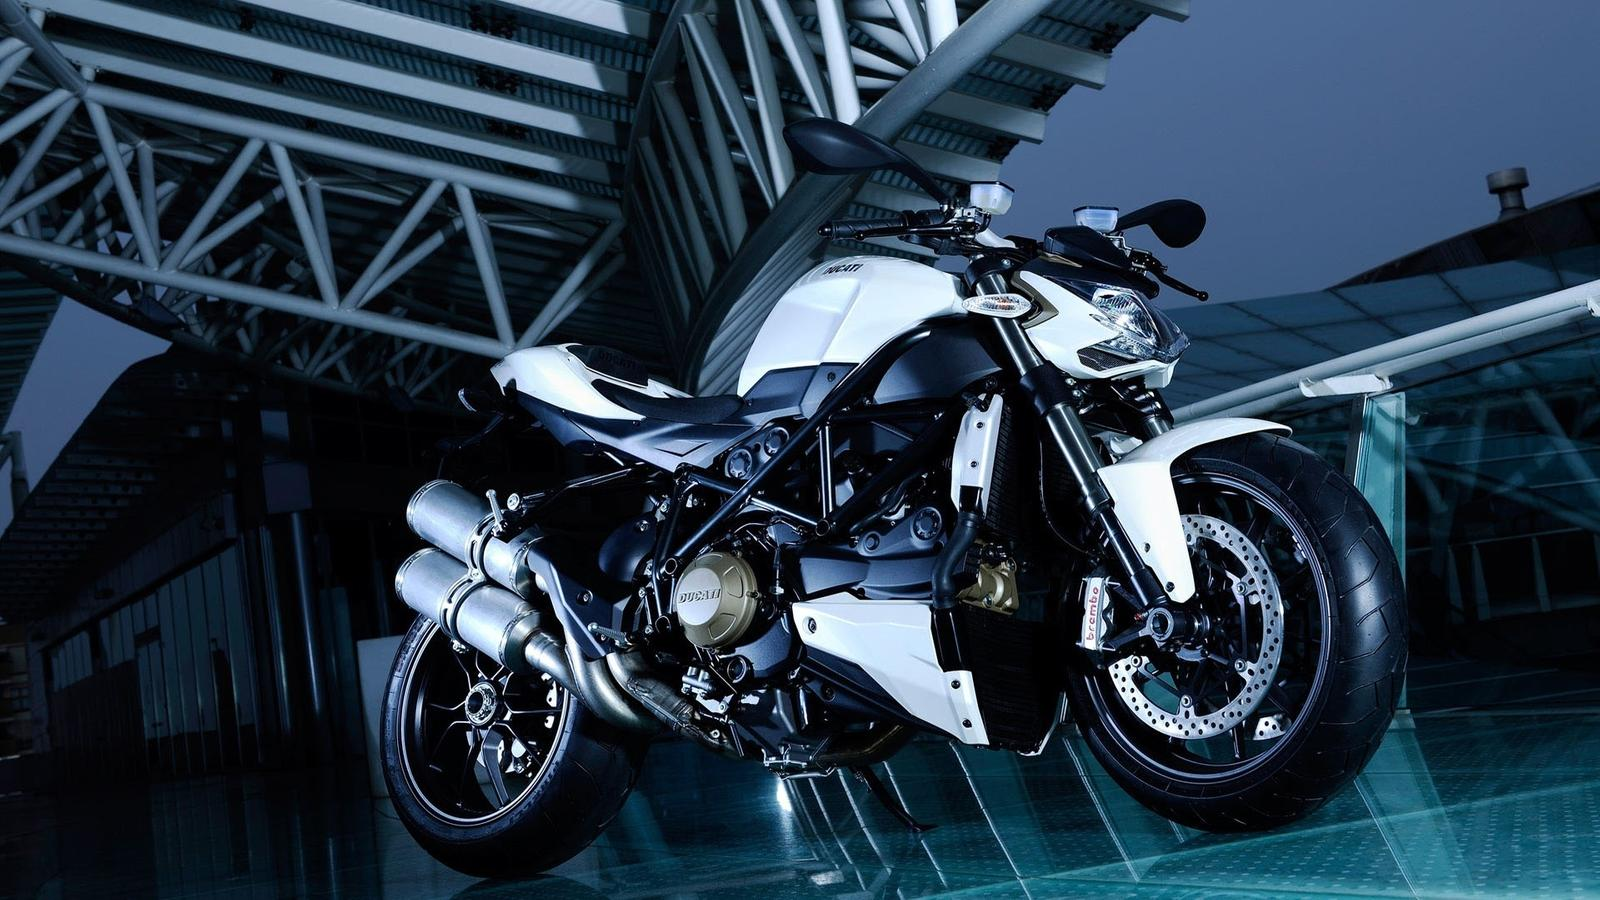 Gorgeous Blue And White Ducati Streetbike Wallpaper Download 1600x900